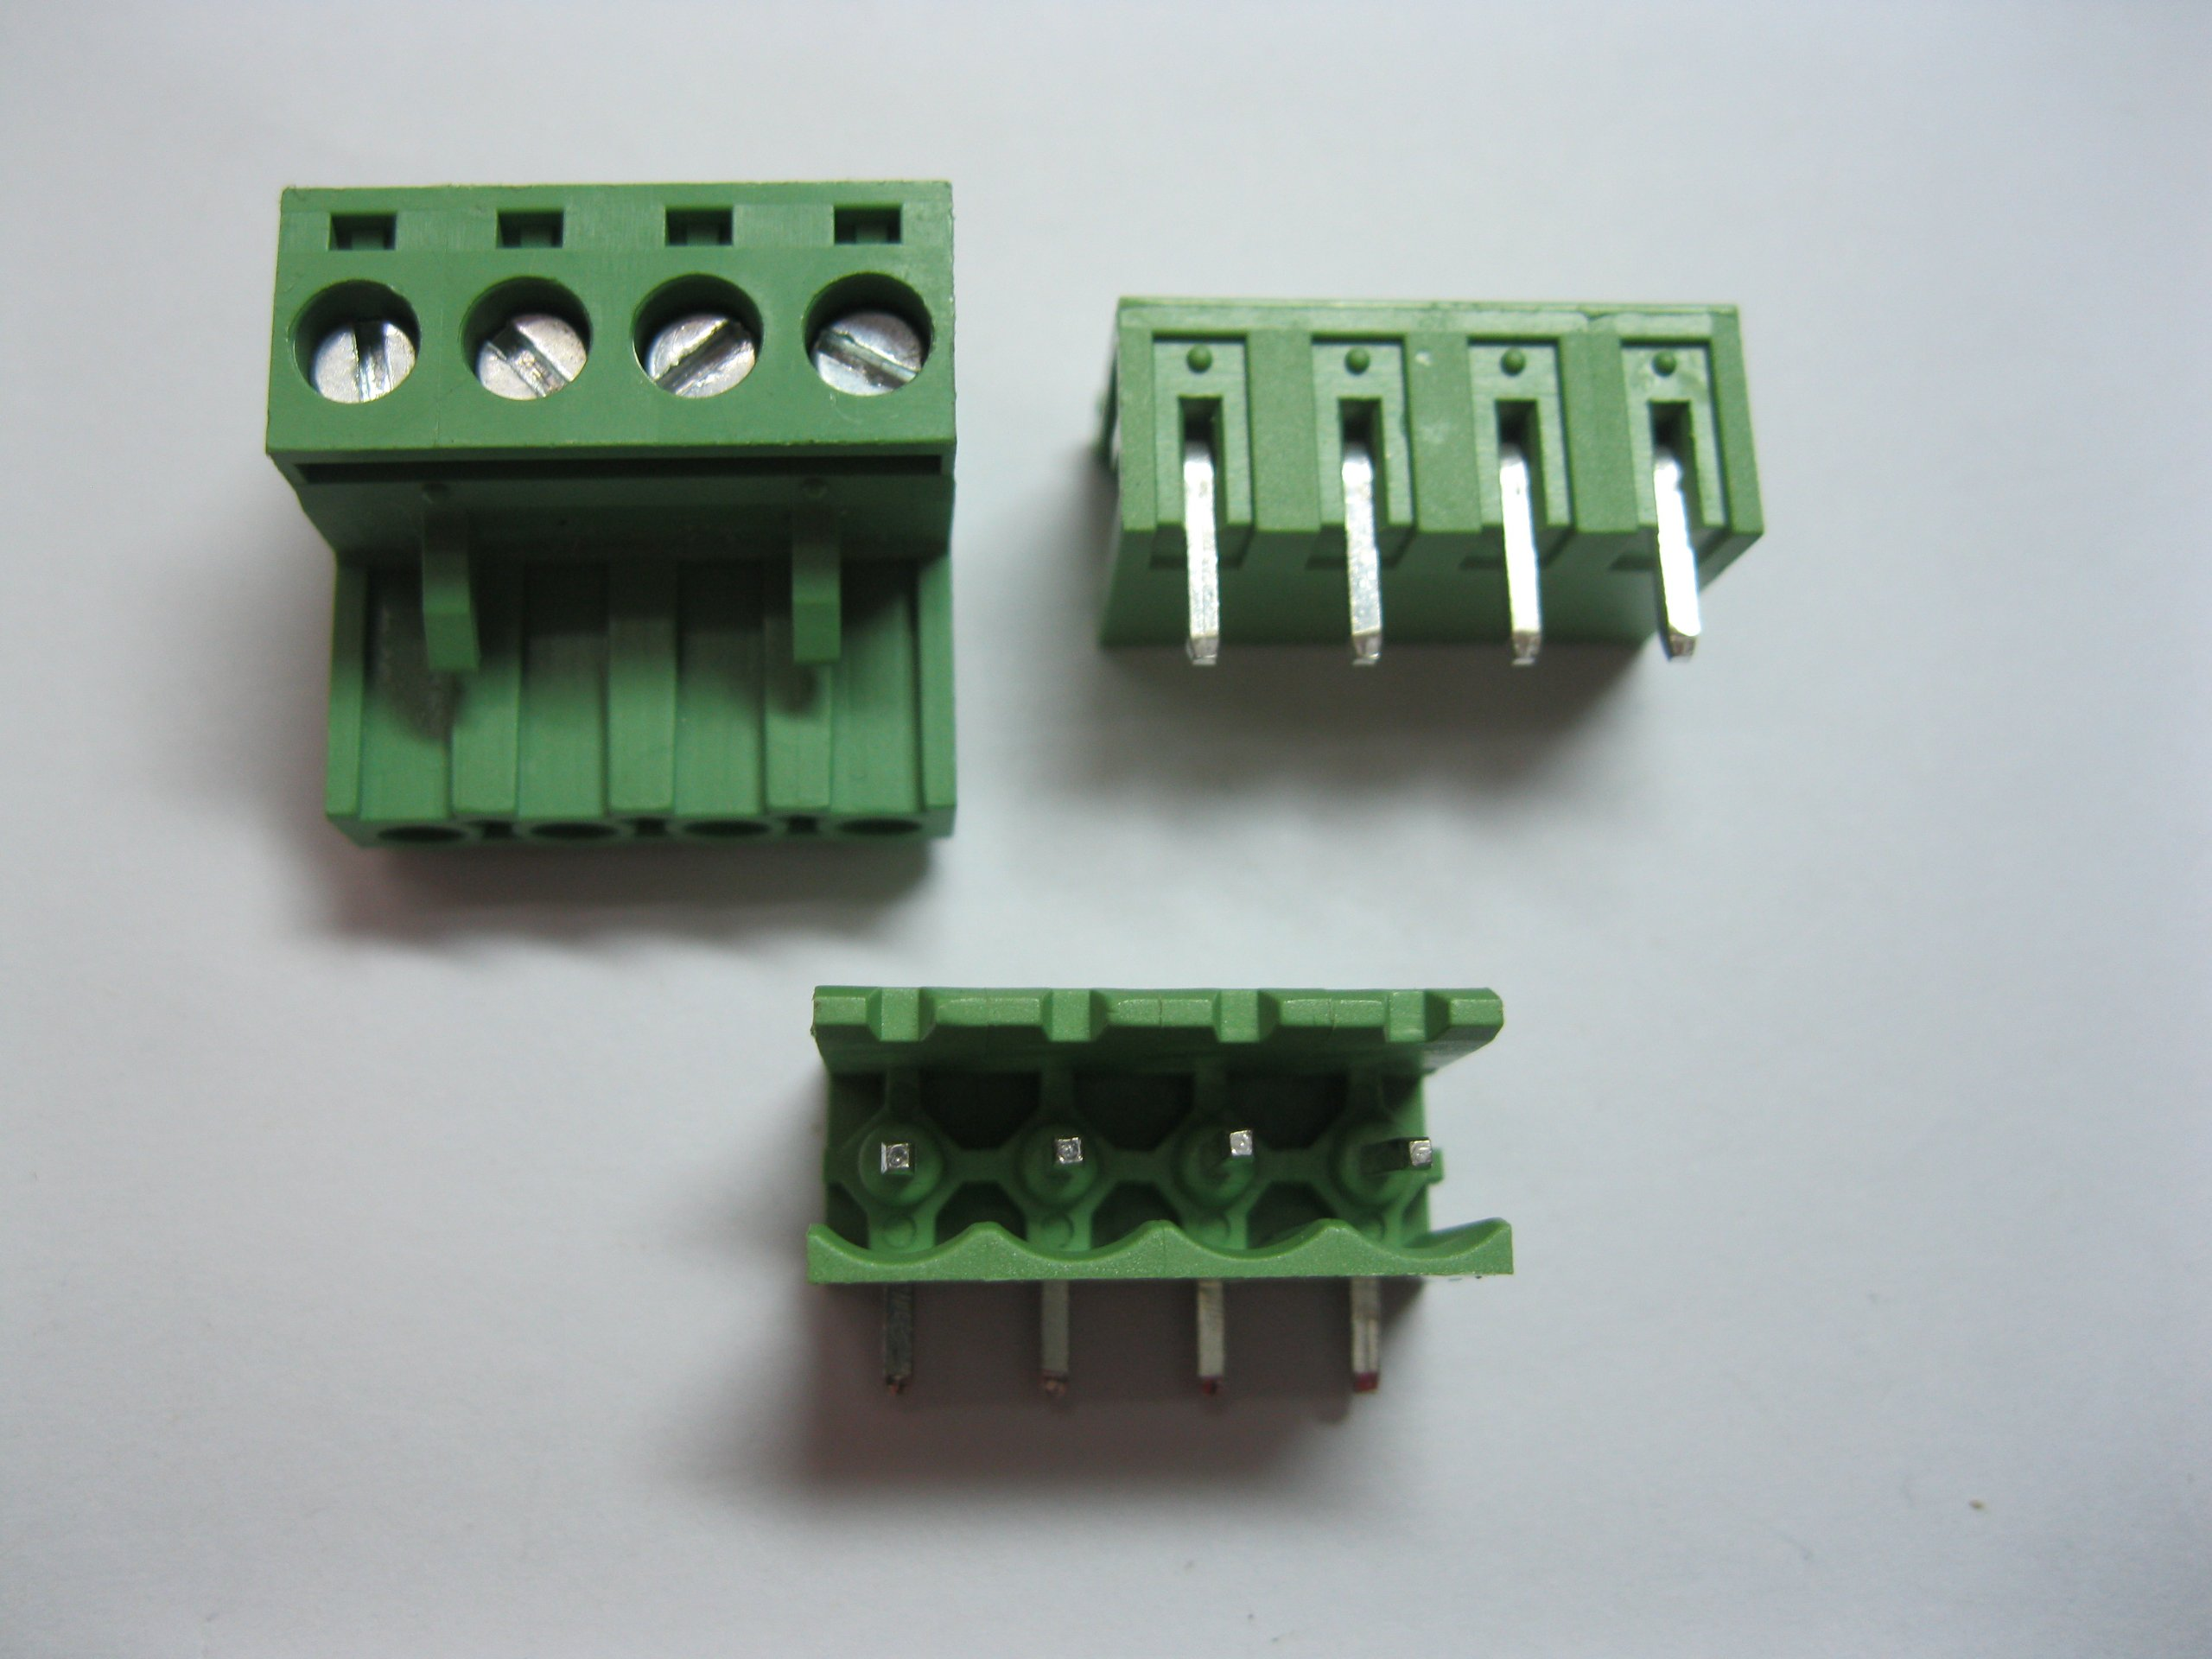 10 Pcs Pitch 5.08mm 4way/pin Screw Terminal Block Connector w/ Angle-pin Green Color Pluggable Type Skywalking